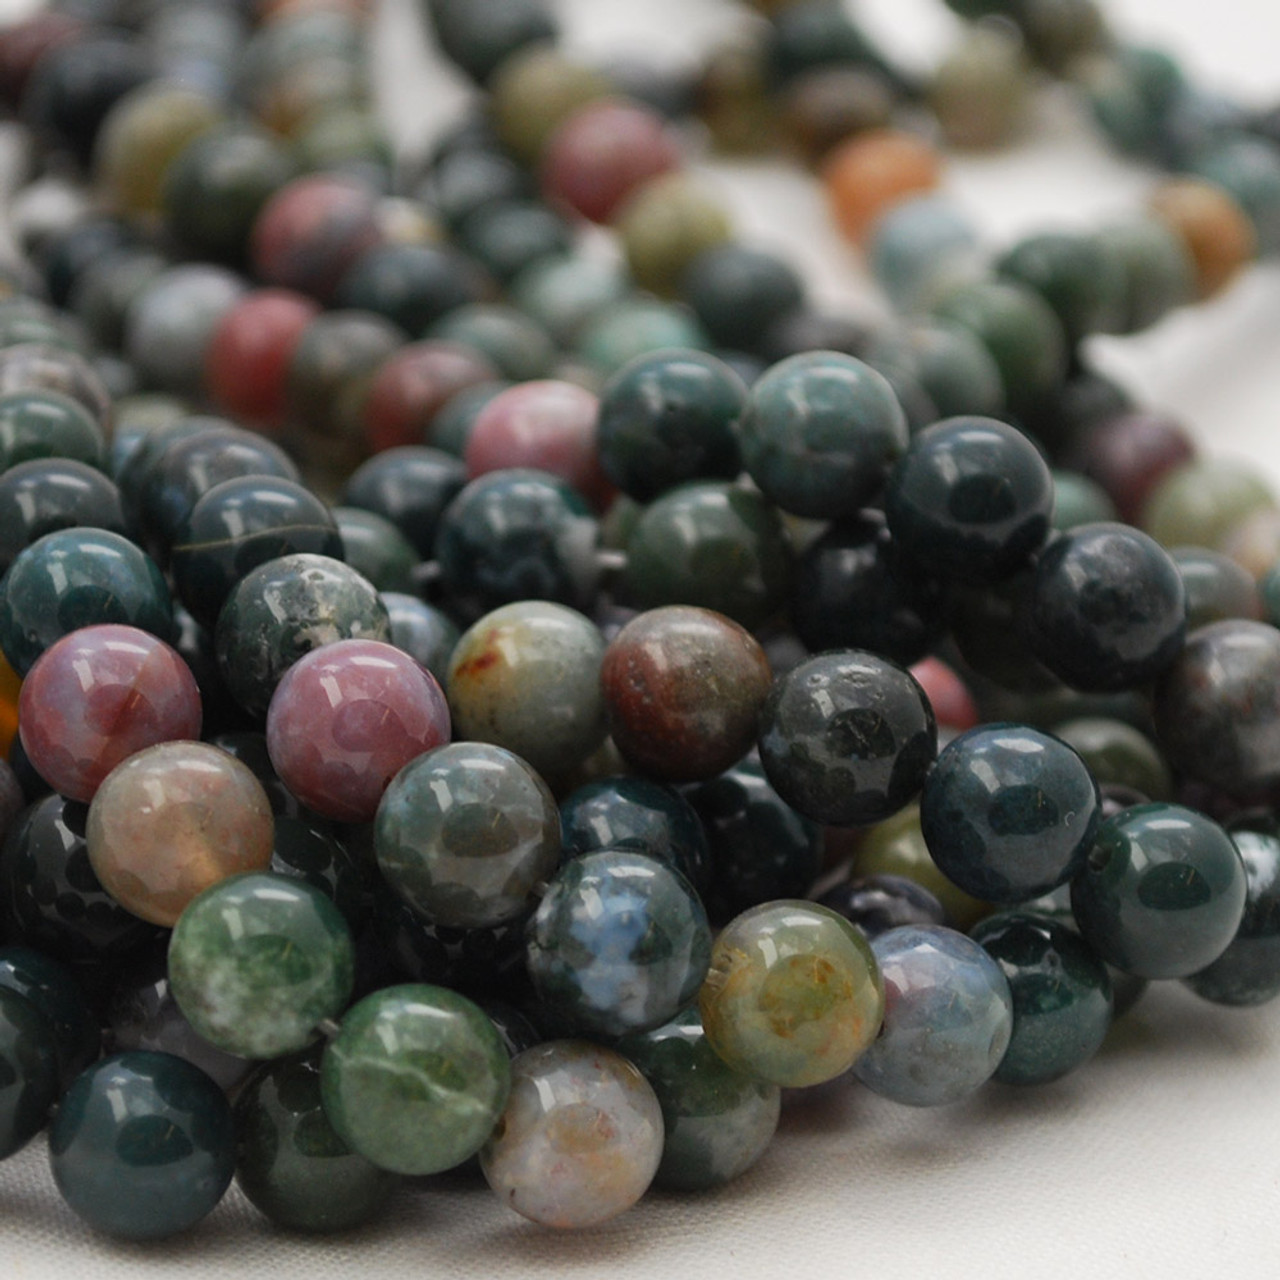 6mm High Quality Grade A Natural Indian Agate Semi-precious Gemstone Round Beads 4mm 15.5 strand 10mm sizes 8mm